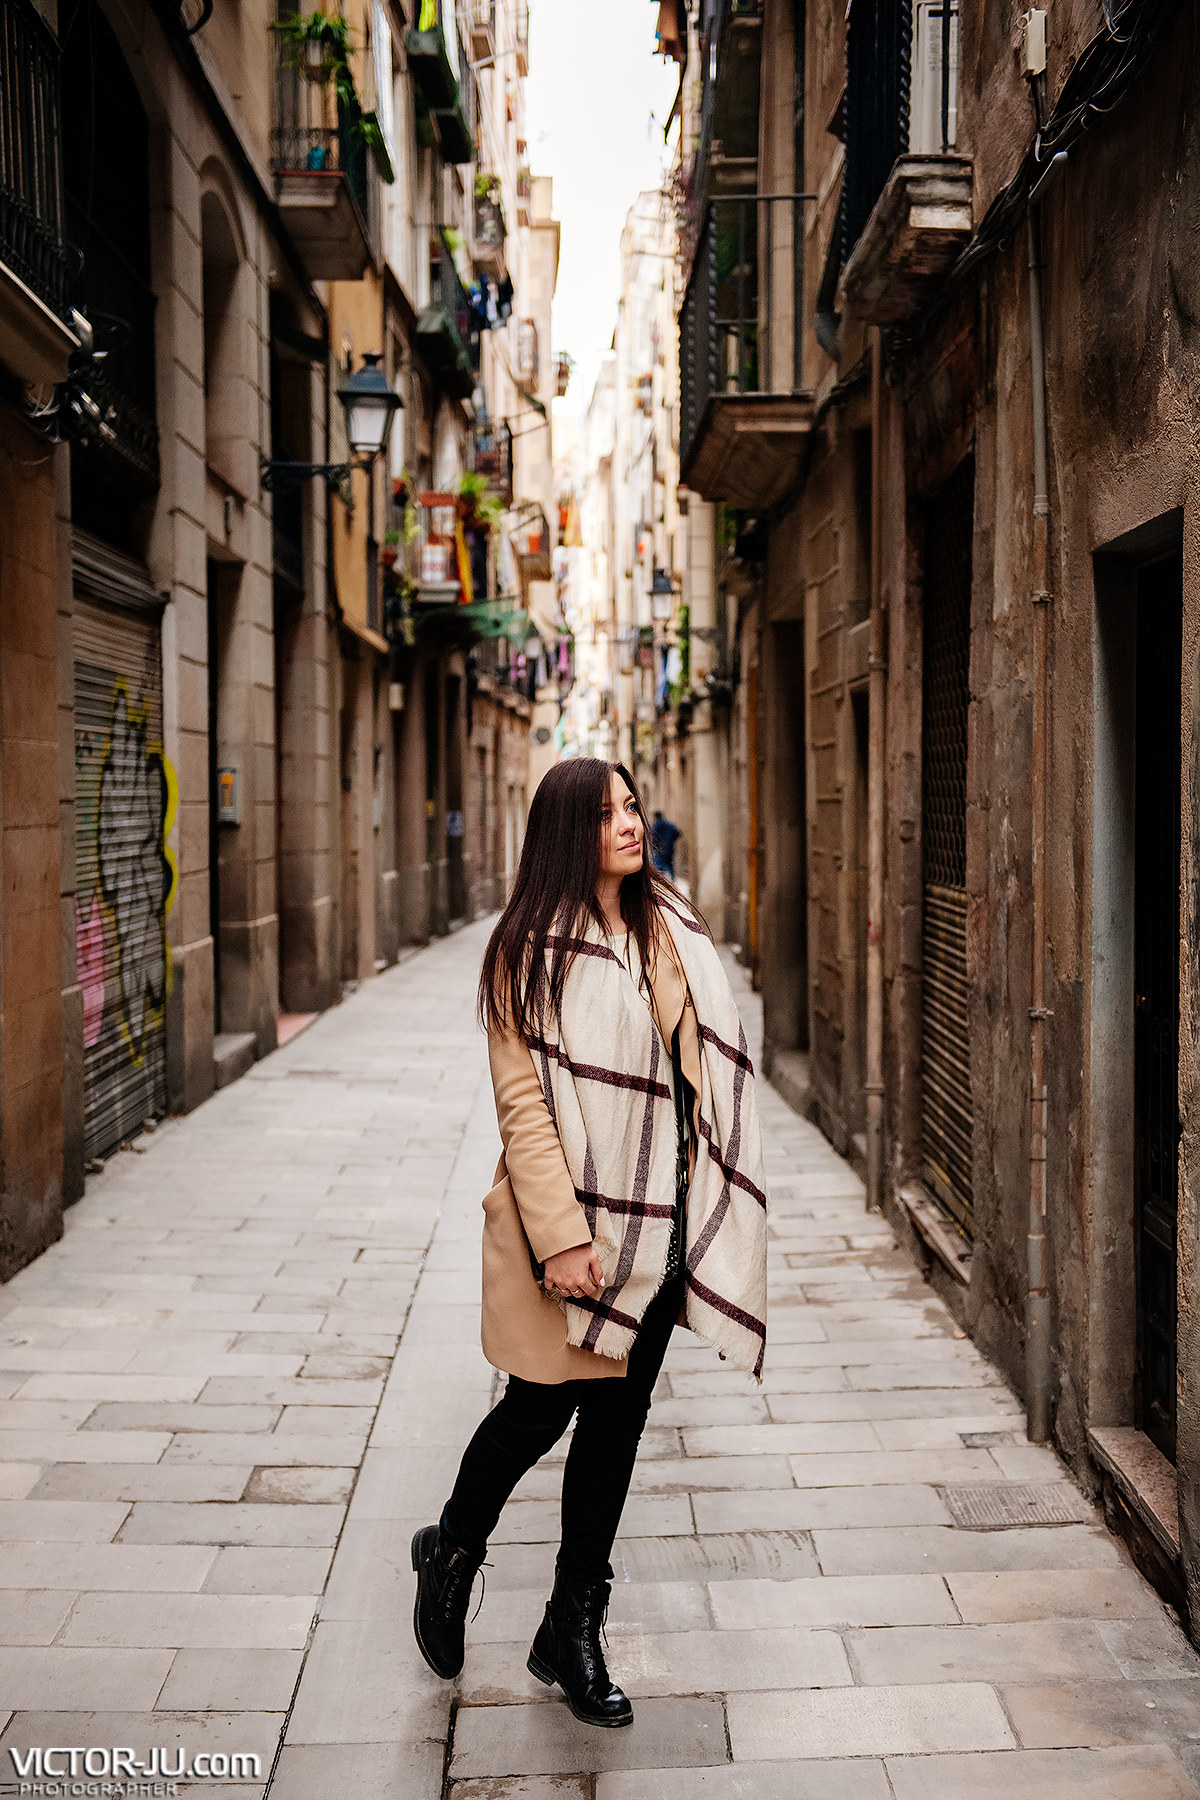 Photosession in the Gothic Quarter, Barcelona